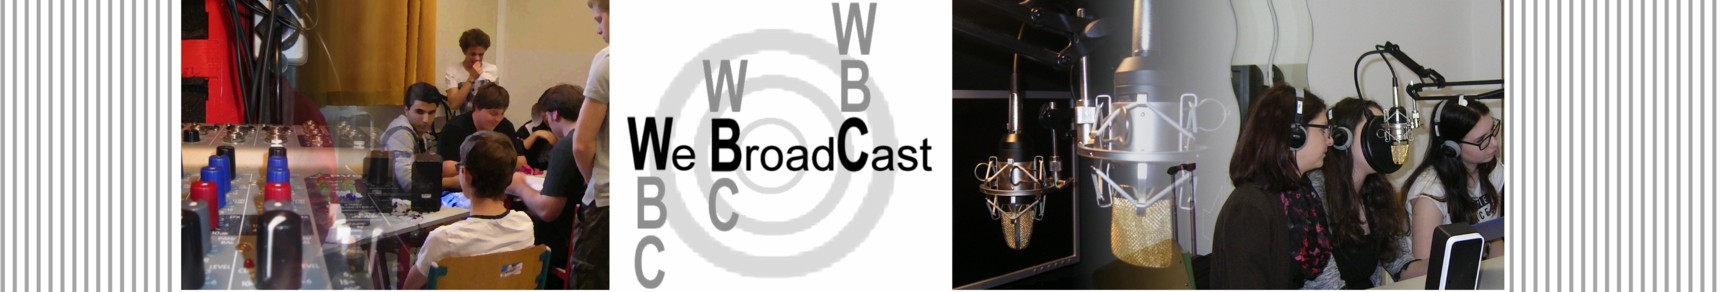 WBC- We BroadCast